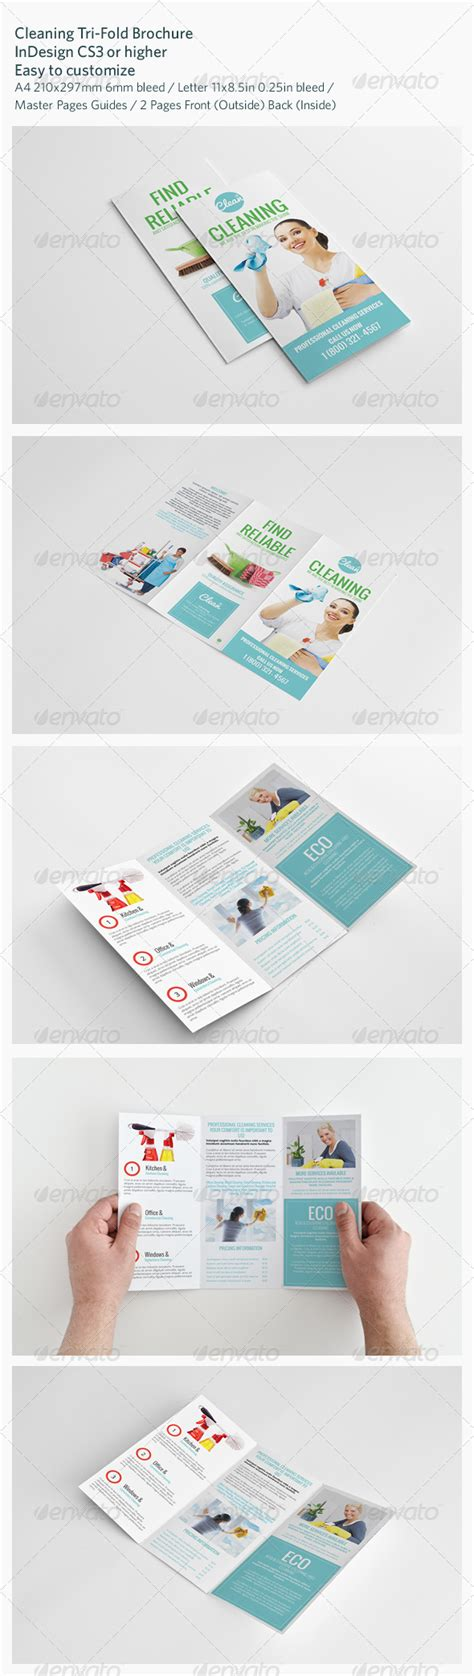 cleaning tri fold brochure graphicriver